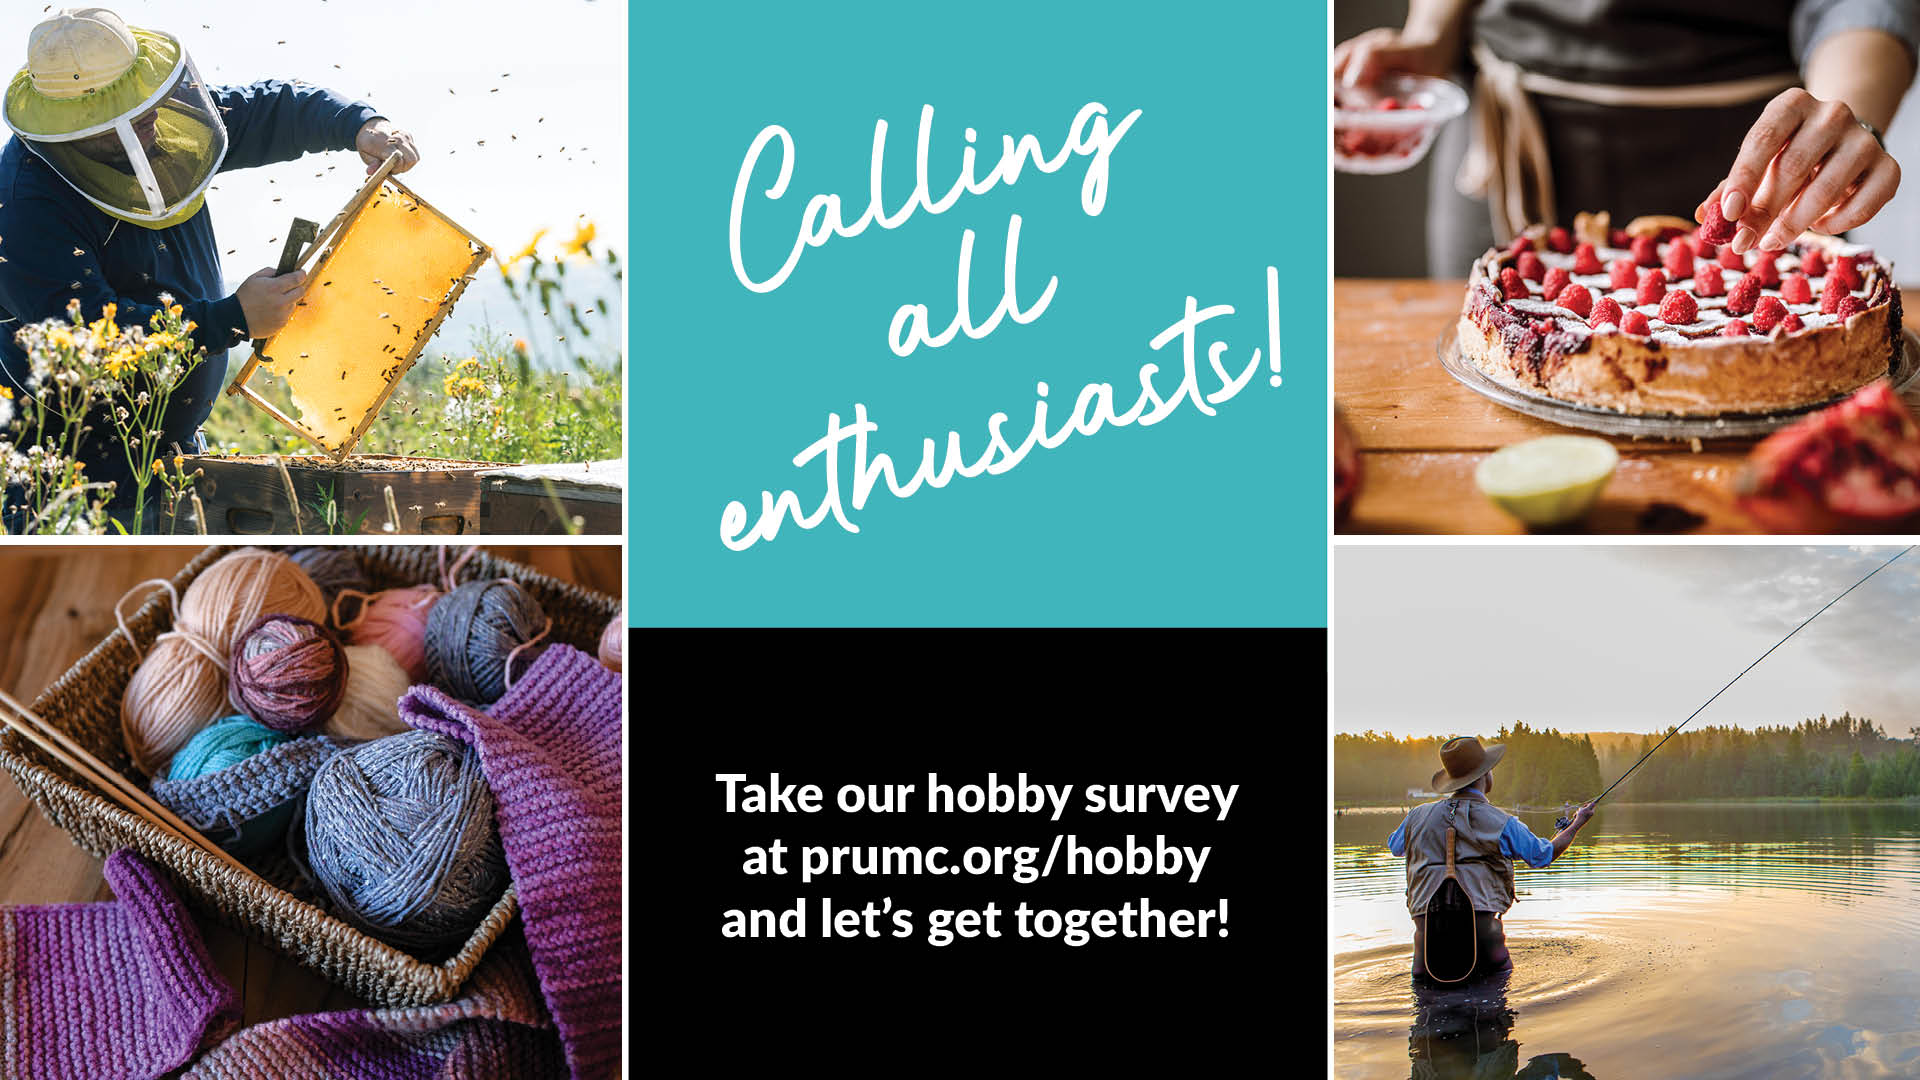 What is your hobby - take our survey